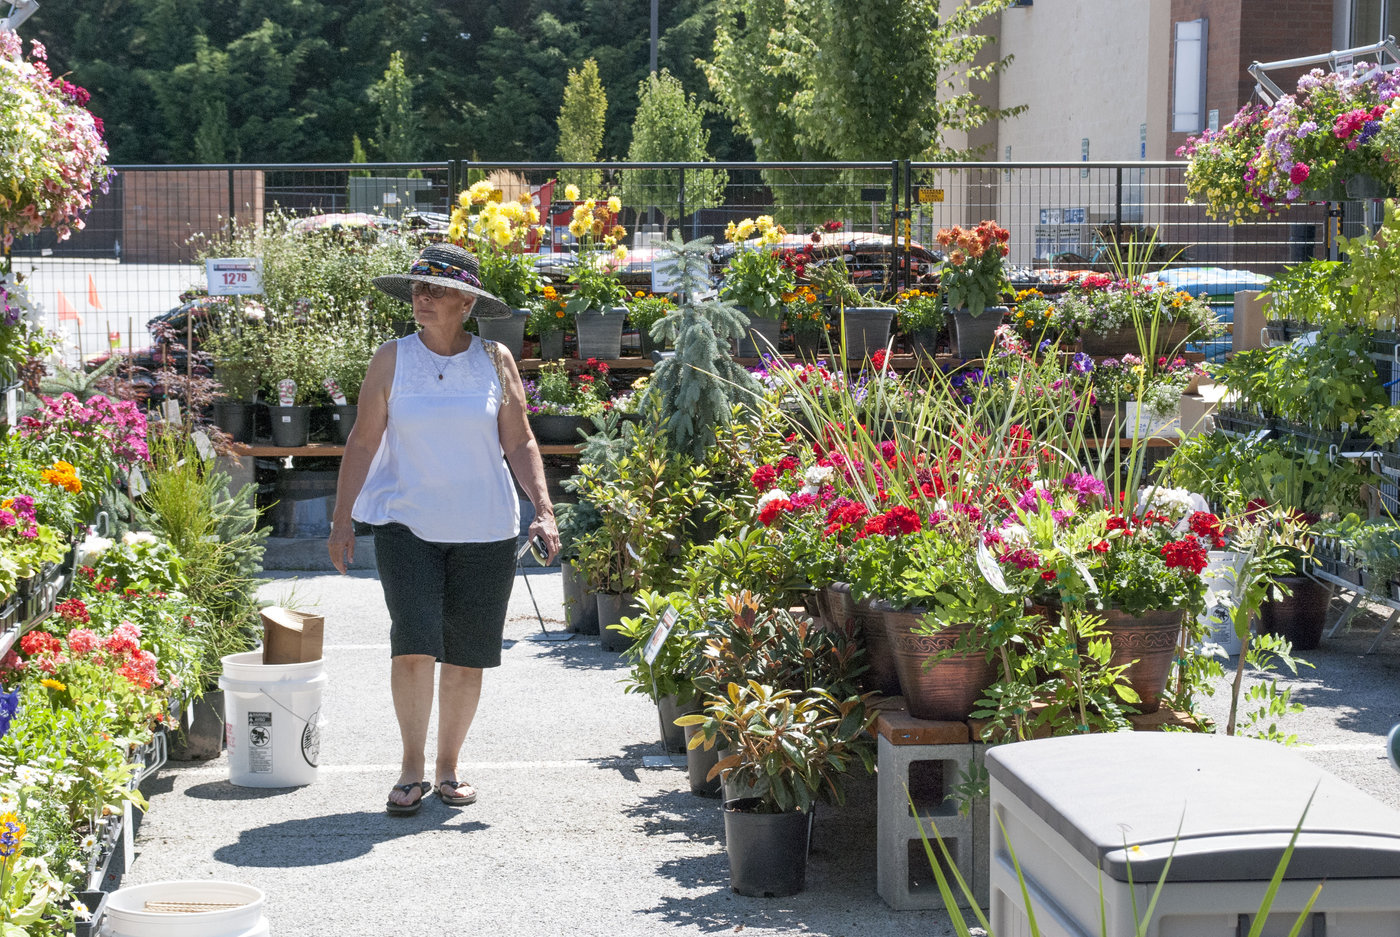 Lawn and garden has been greatly expanded to sell more green goods.